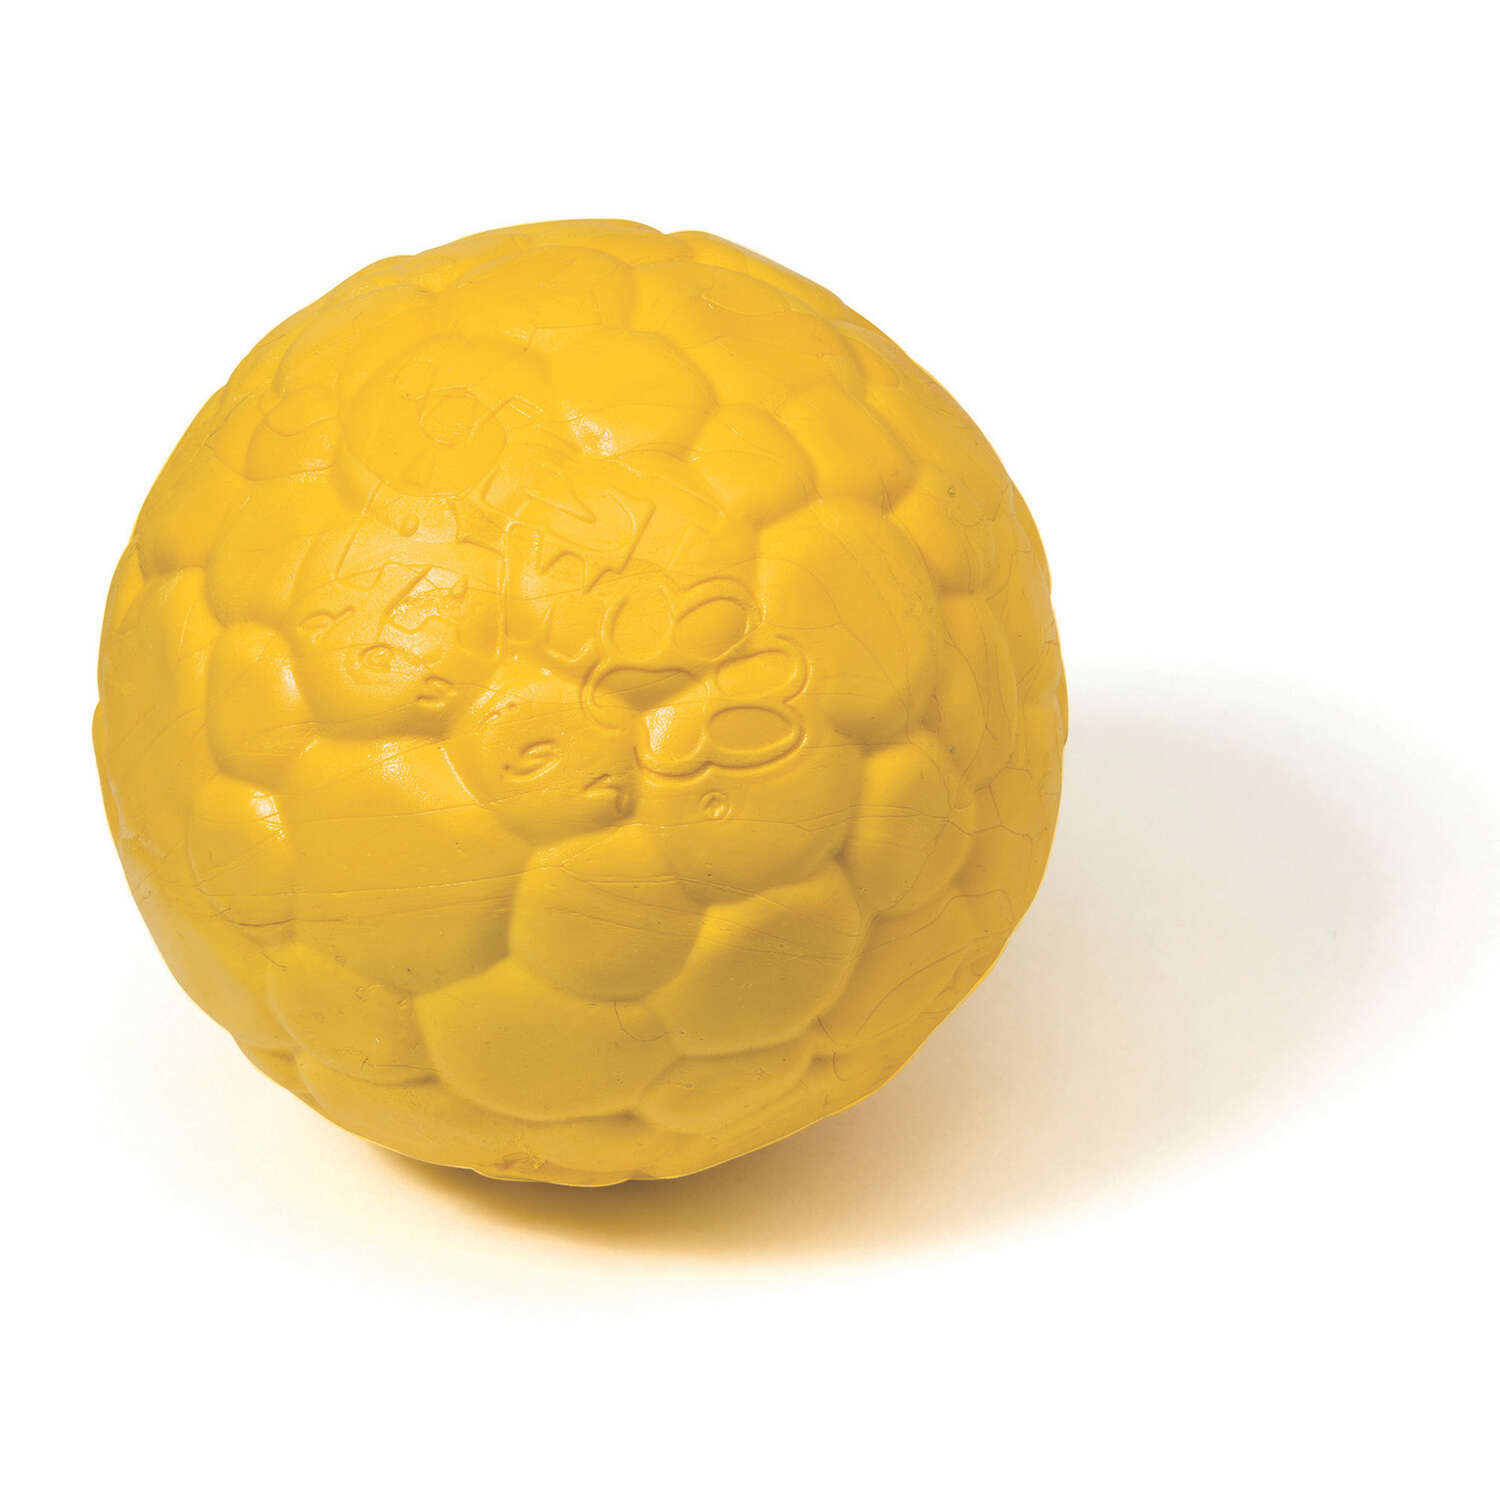 West Paw  Zogoflex Air  Yellow  Boz Ball  Ball Dog Toy  Medium  Synthetic Rubber